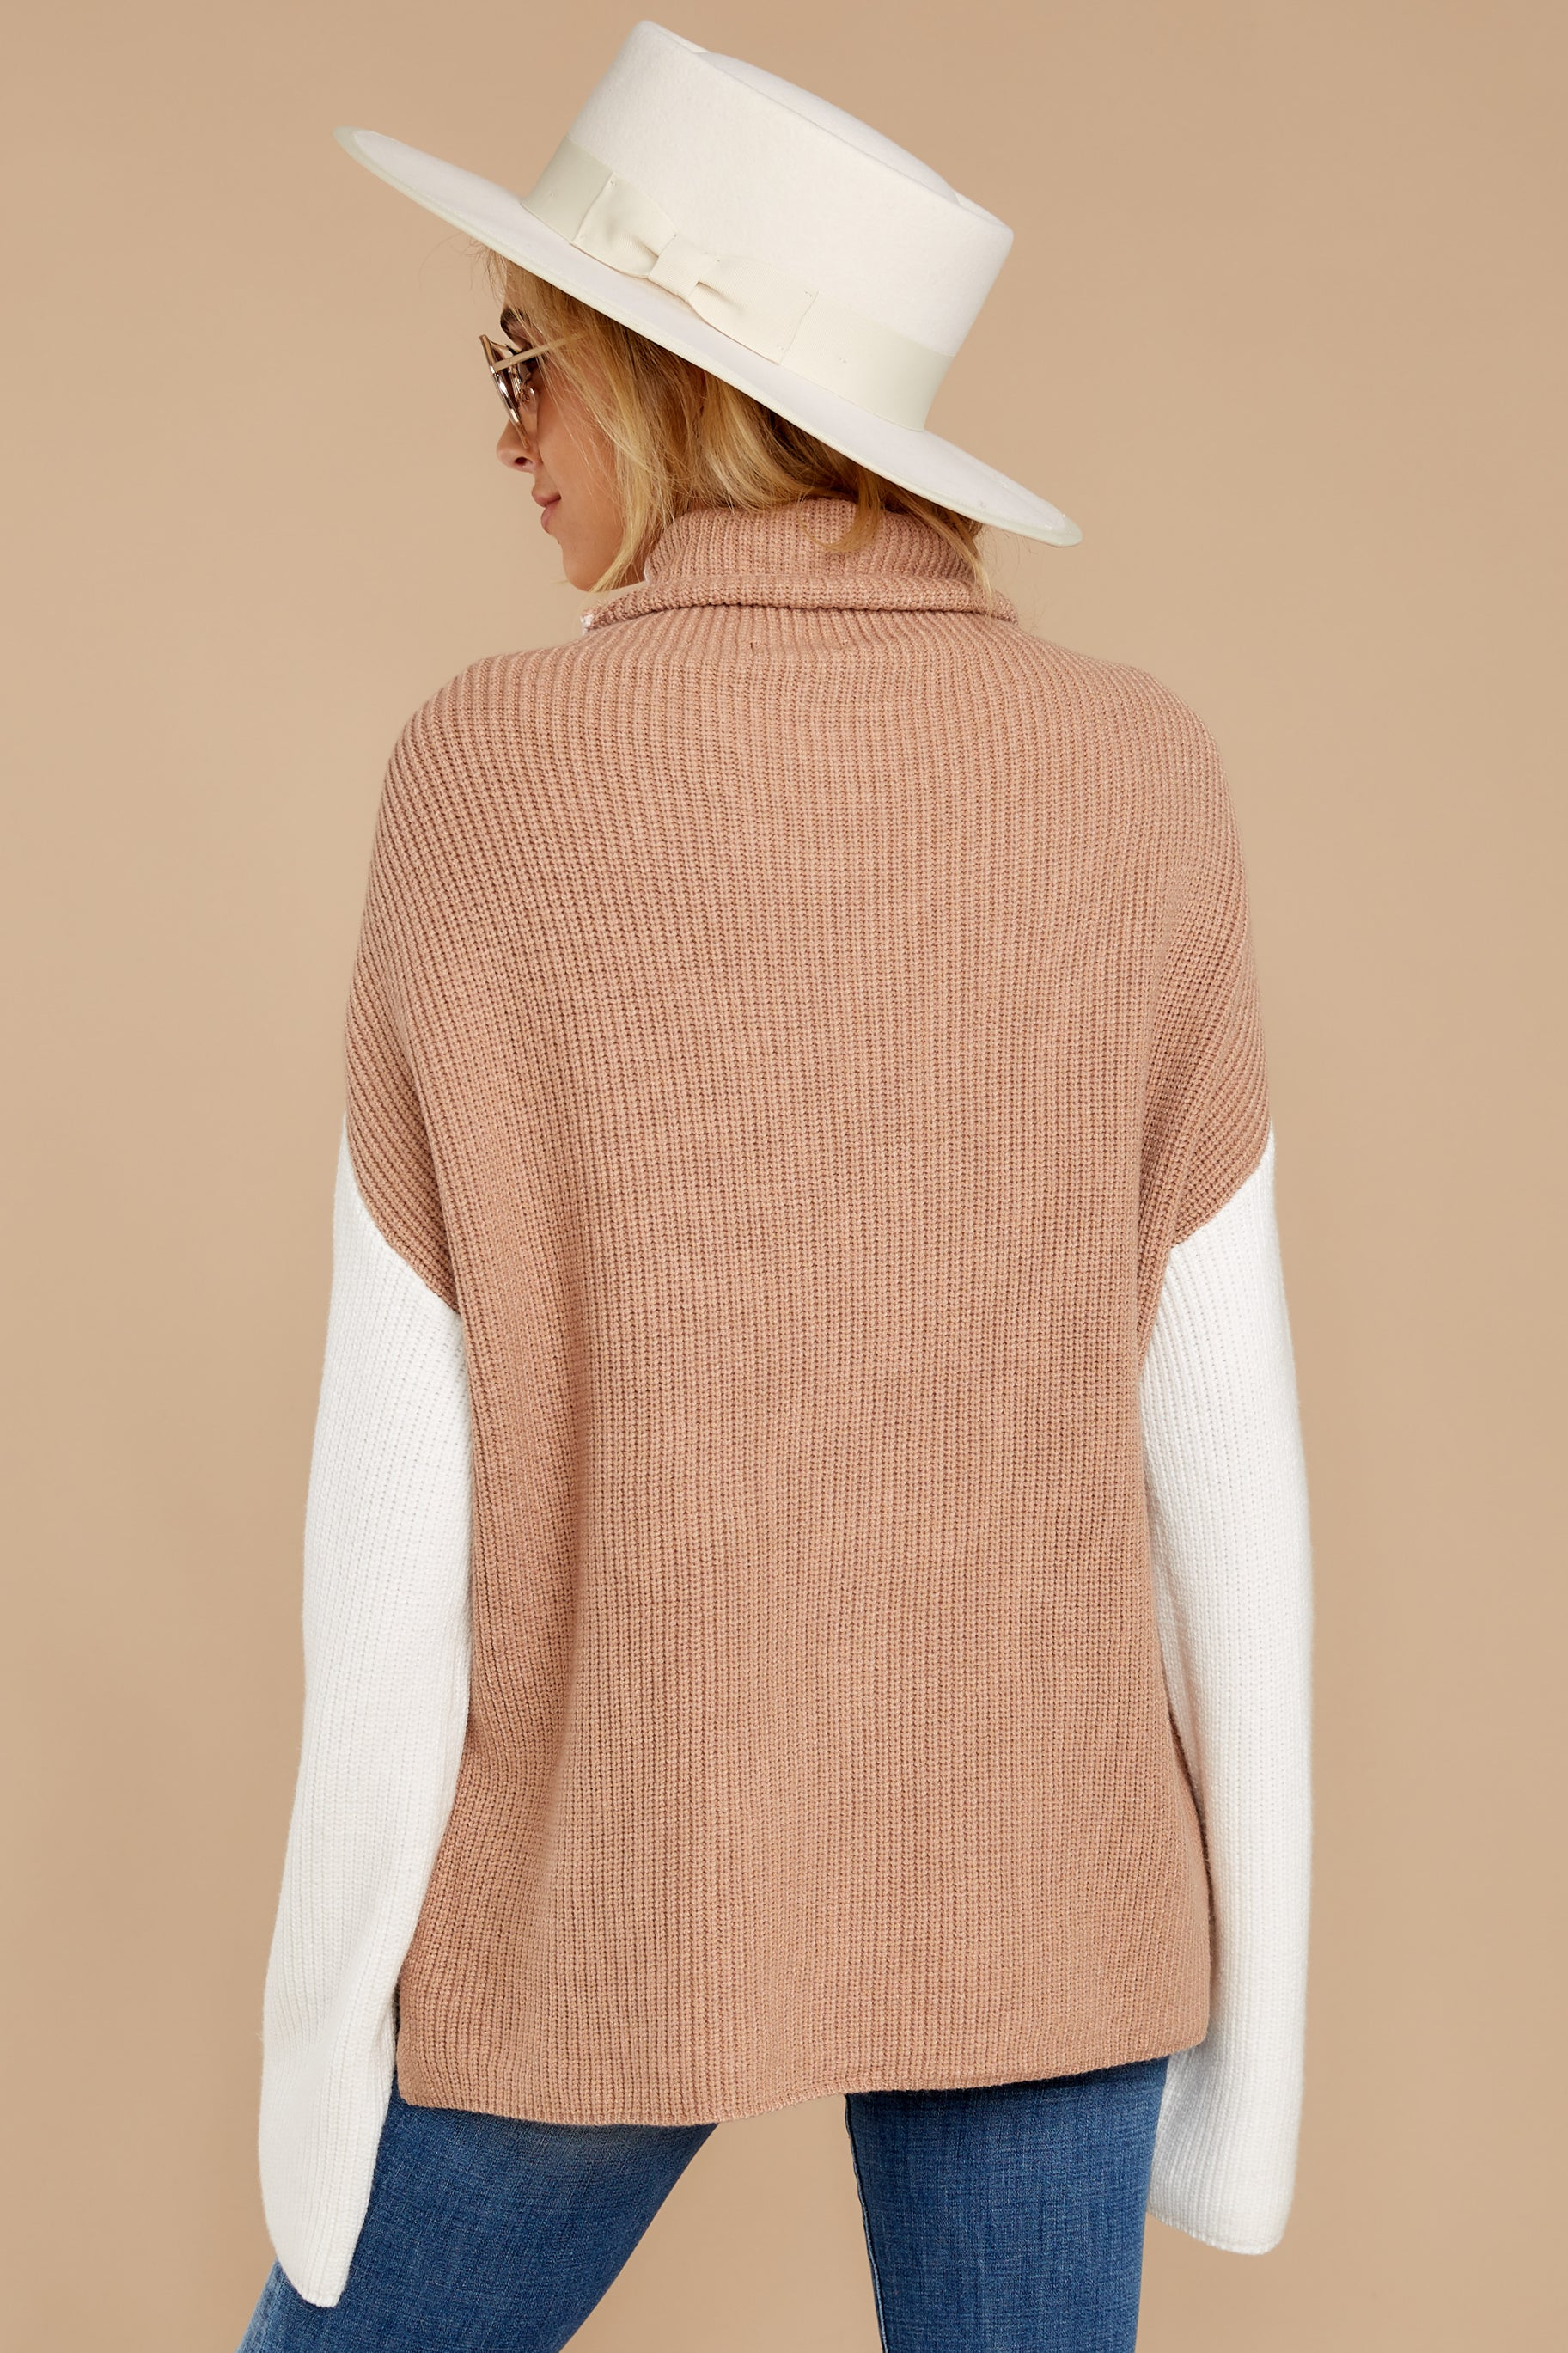 8 Set The Tone Beige And Ivory Cowl Neck Sweater at reddress.com